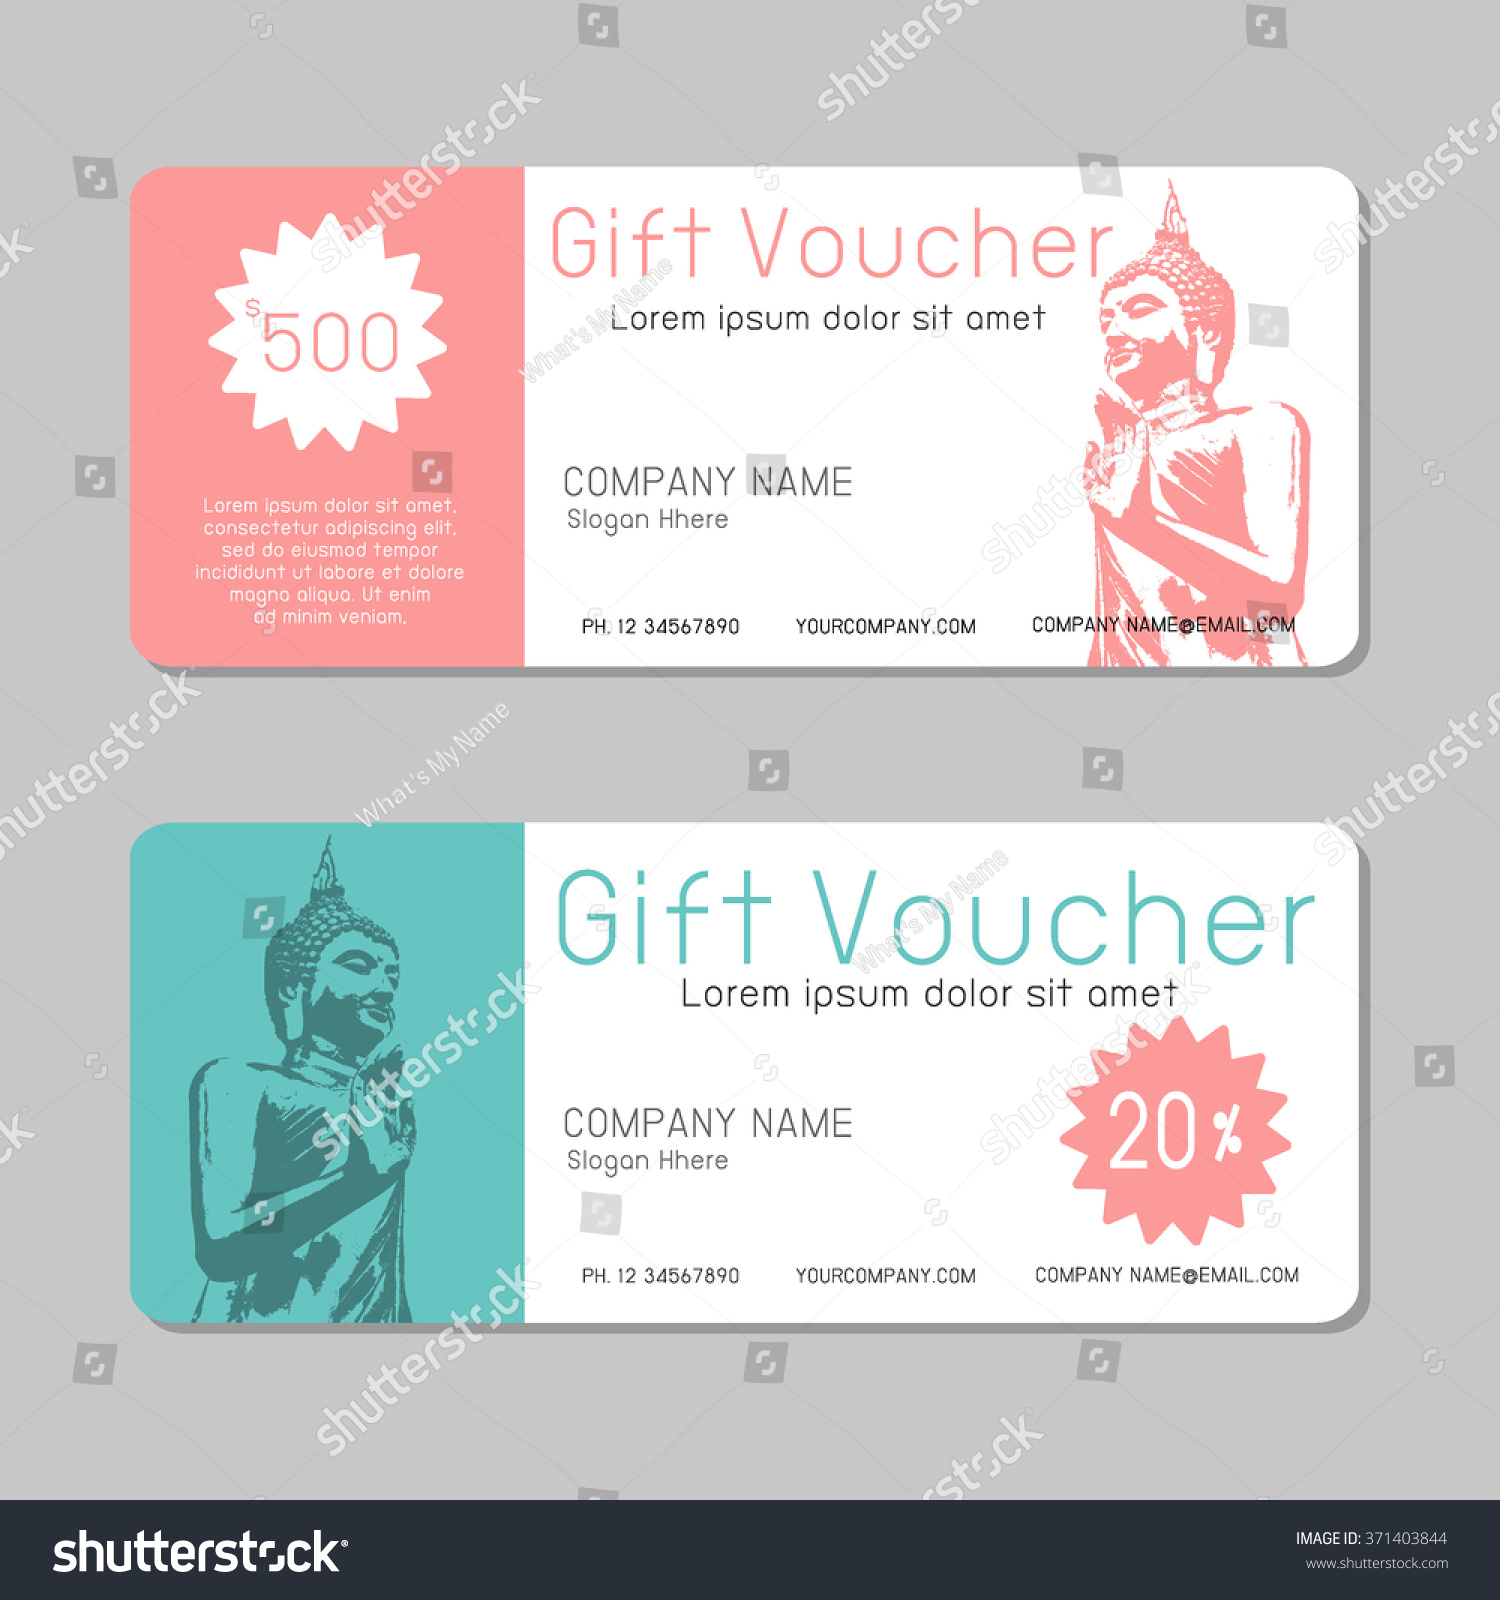 gift voucher template free download